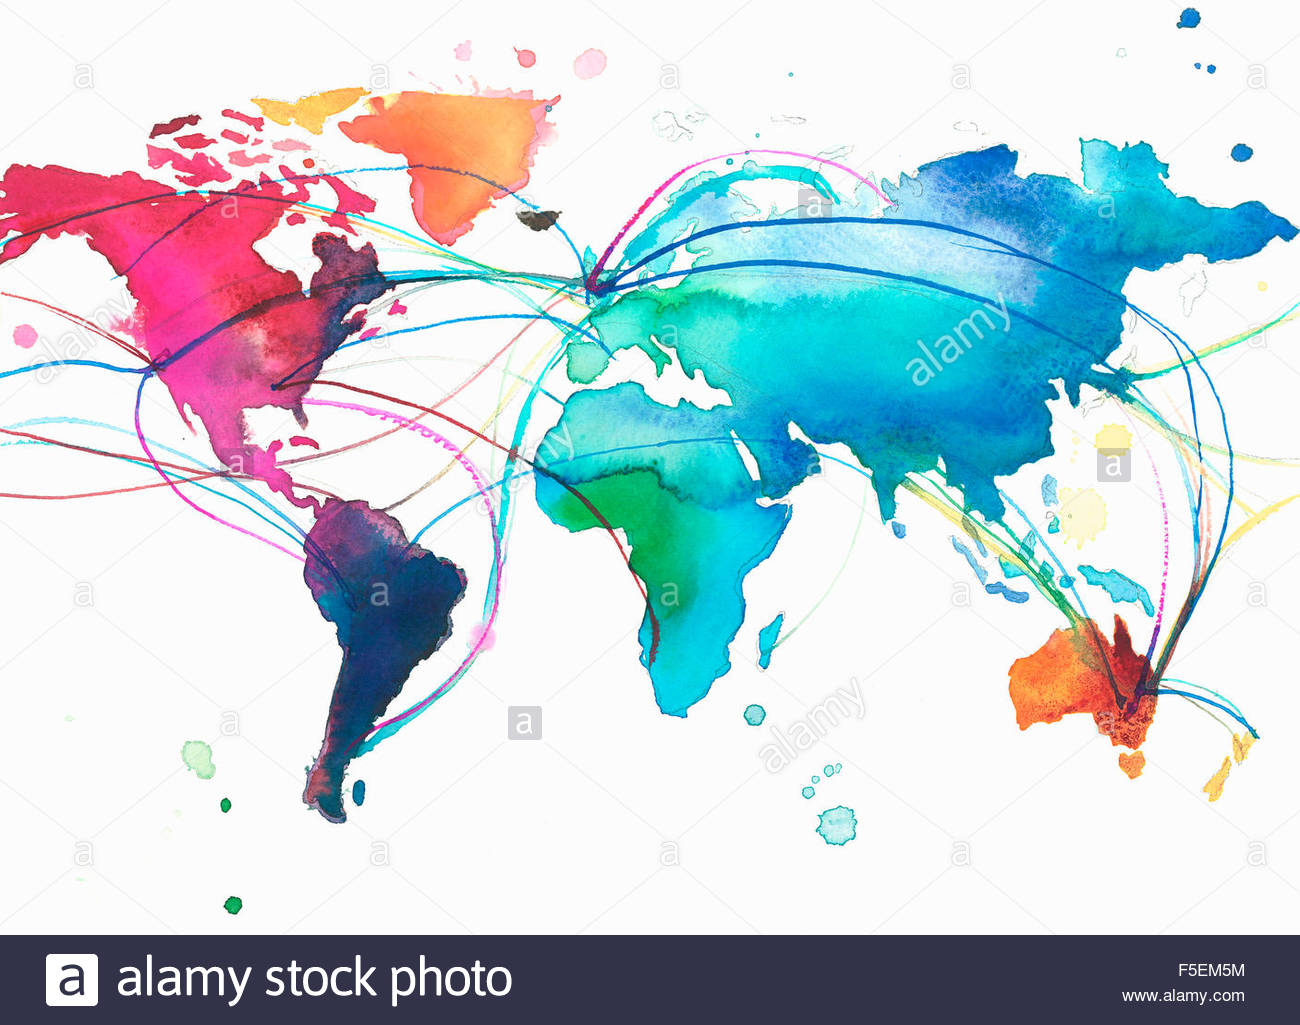 United Kingdom With Connections Across Multicolored World Map Stock